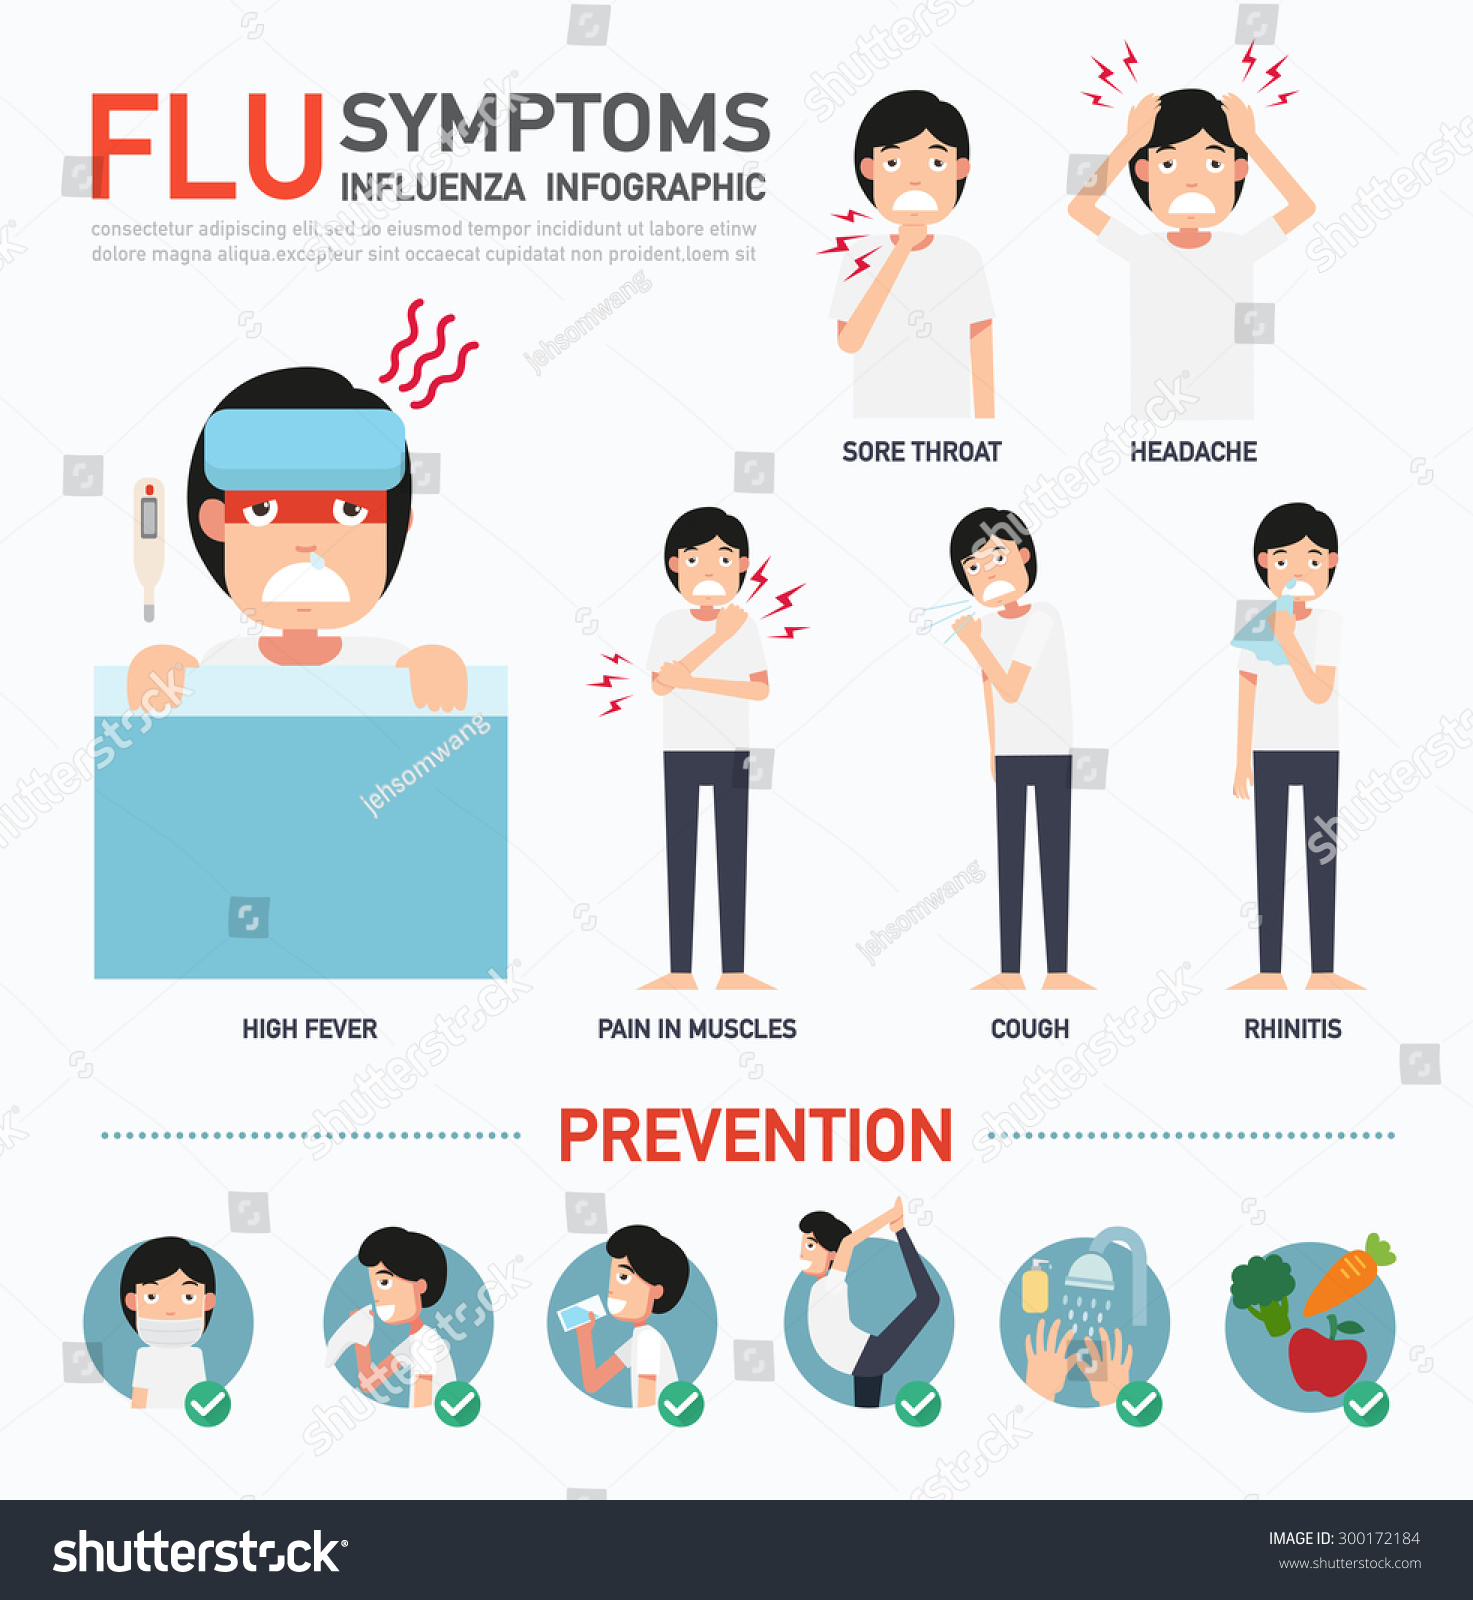 royalty free flu symptoms or influenza infographic 300172184 stock